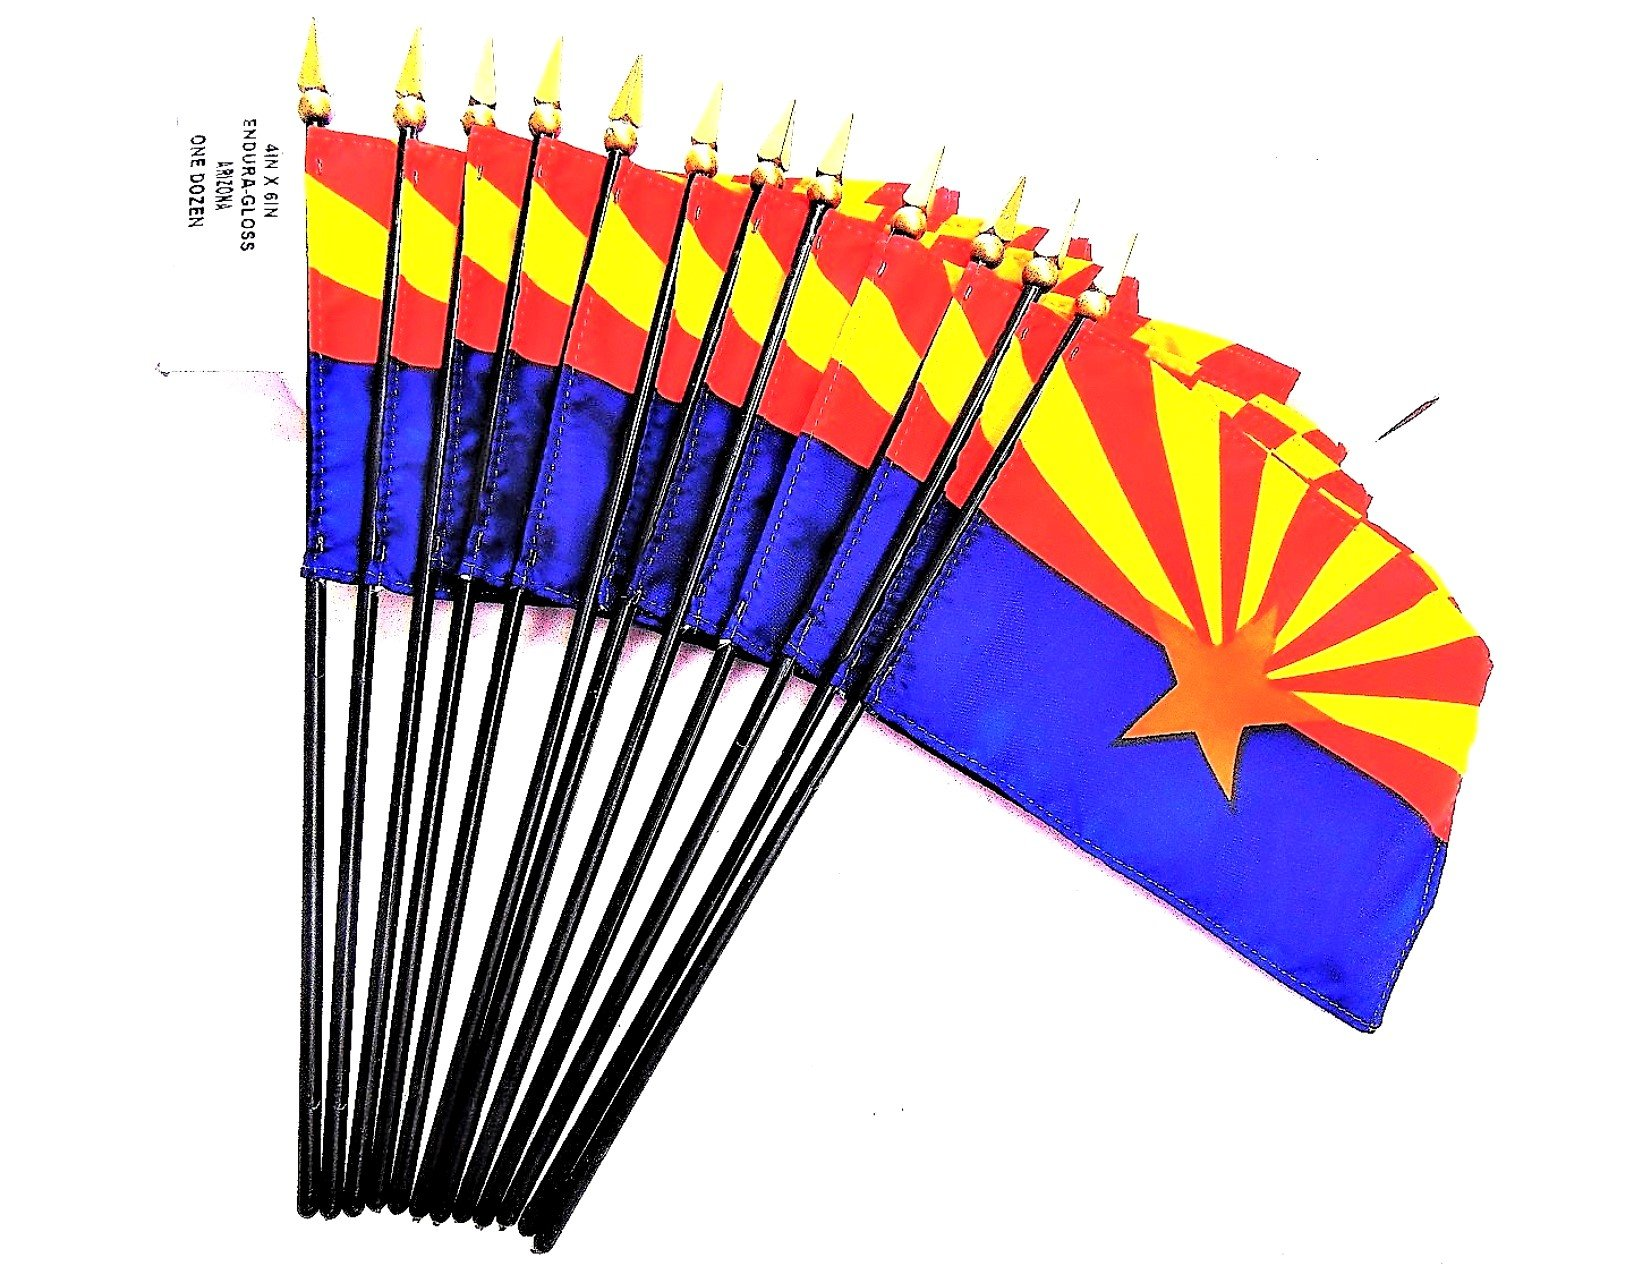 MADE IN USA!! Box of 12 Arizona 4''x6'' Miniature Desk & Table Flags; 12 American Made Small Mini Arizona State Flags in a Custom Made Cardboard Box Specifically Made for These Flags